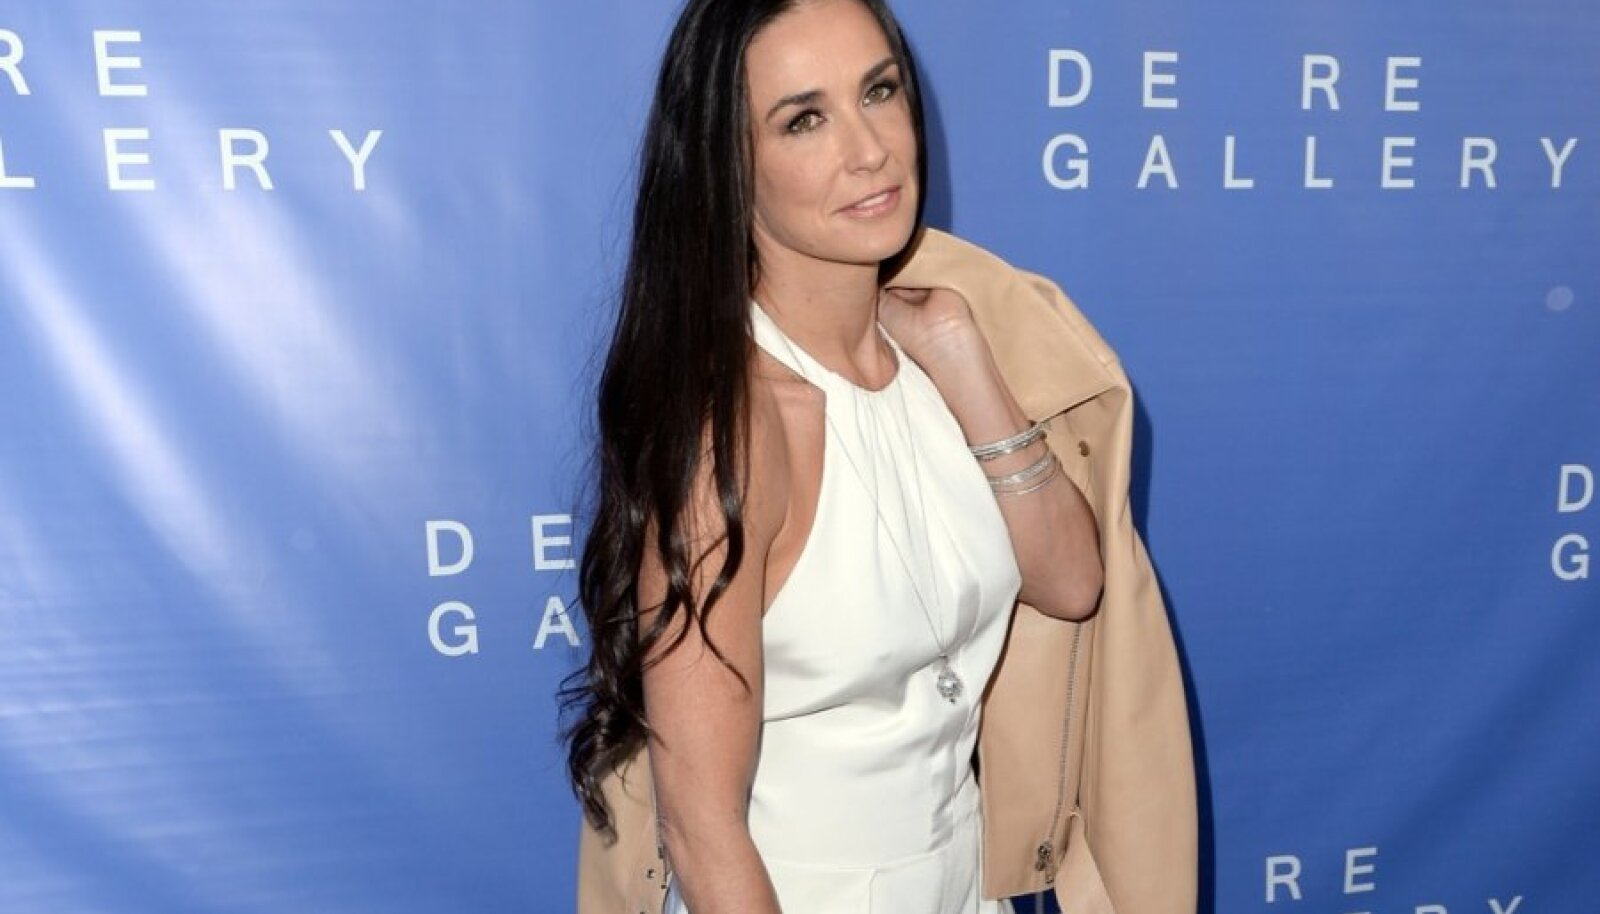 Actress Demi Moore arrives for the grand opening of De Re Gallery in West Hollywood